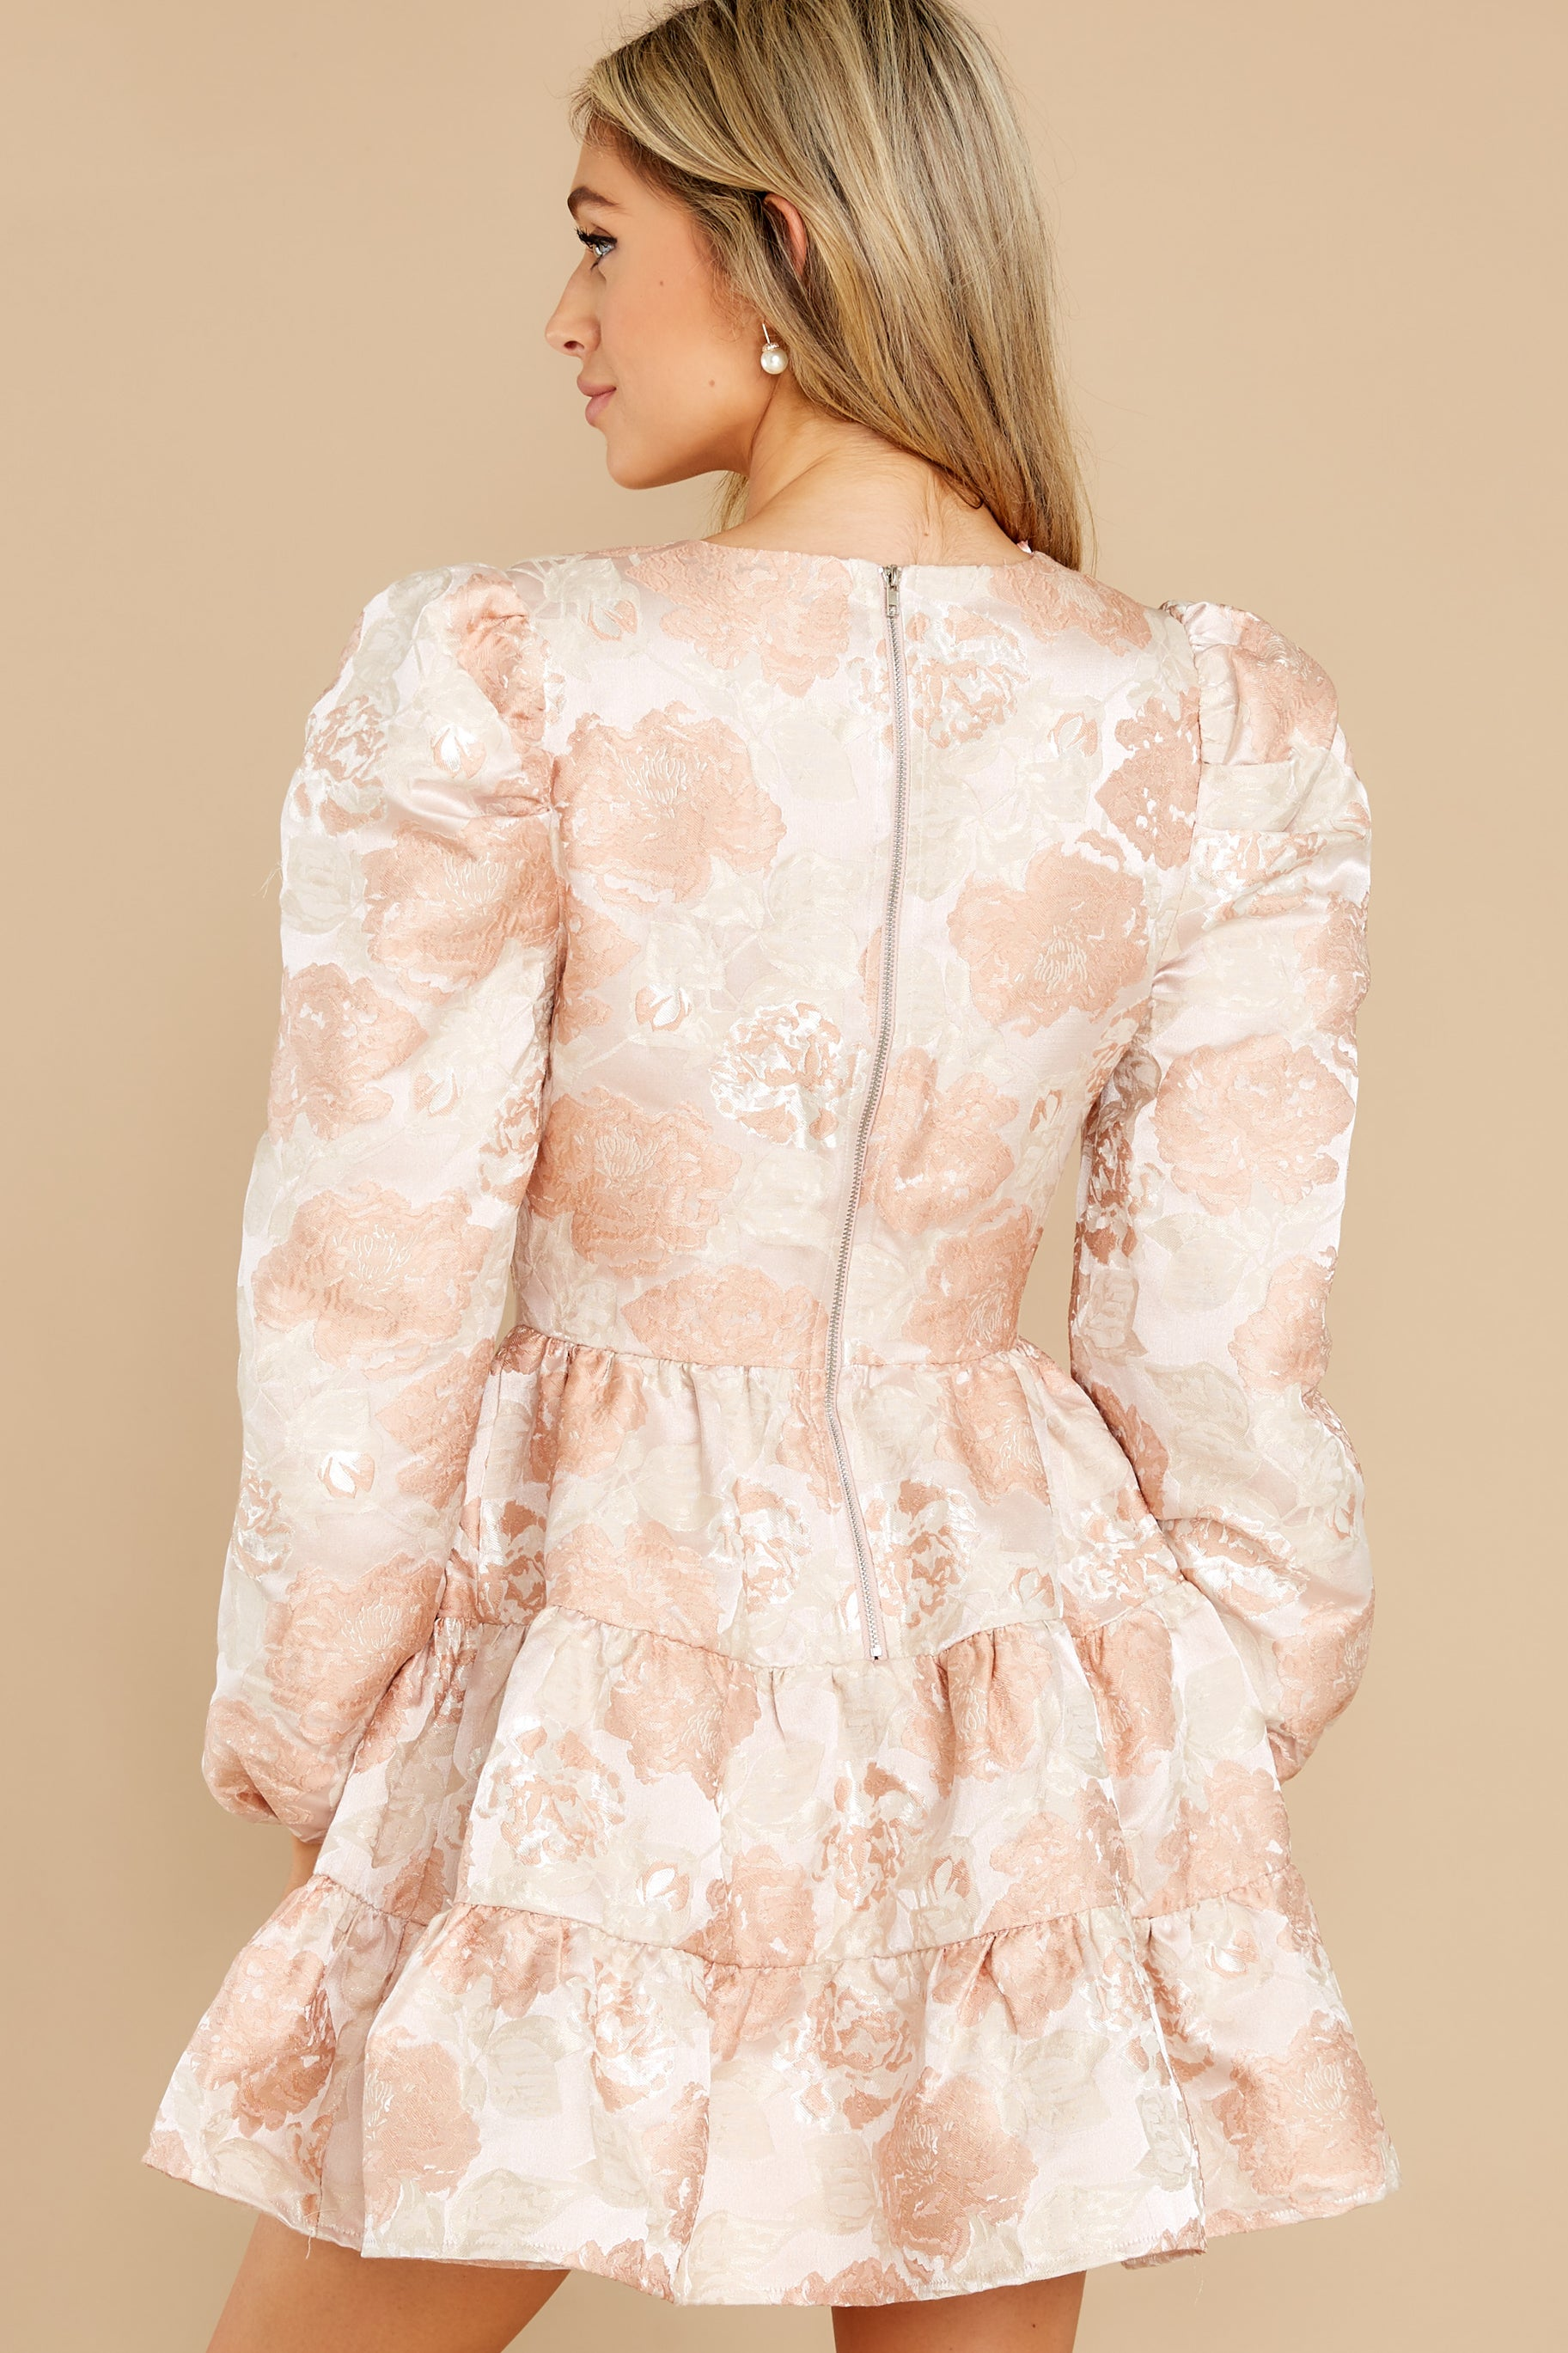 7 Celebratory Cheers Blush And Beige Floral Print Dress at reddress.com